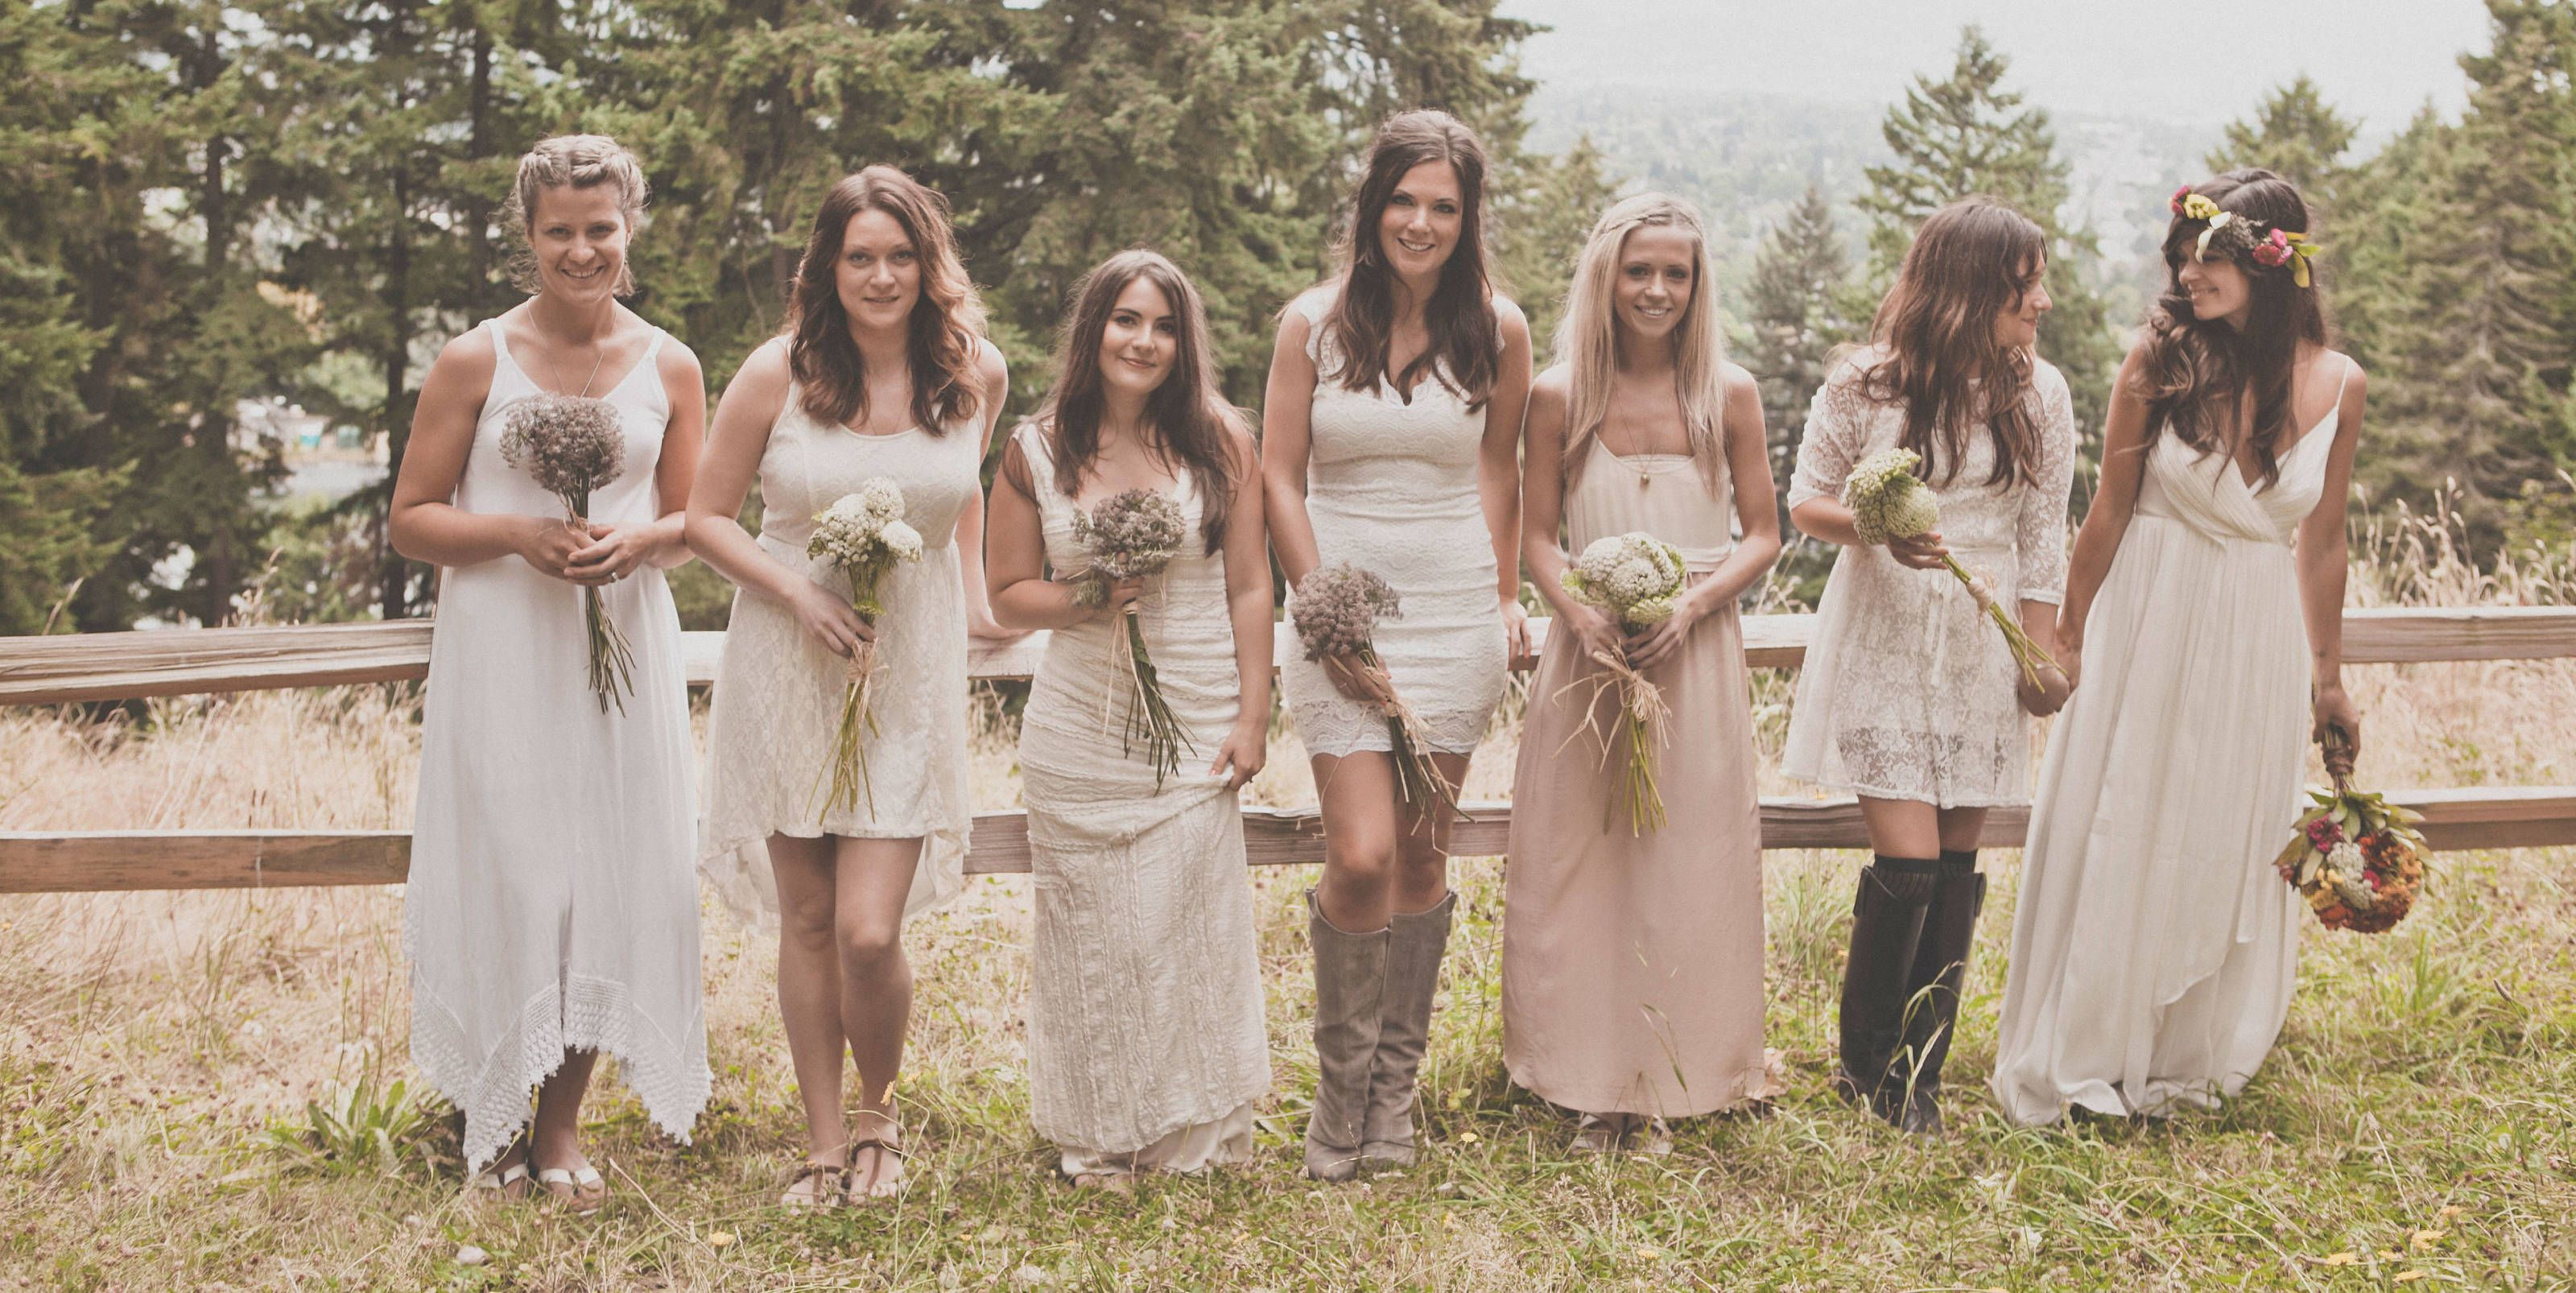 18 adorable photos that prove the best bridesmaids dresses are 18 adorable photos that prove the best bridesmaids dresses are mismatched ombrellifo Image collections